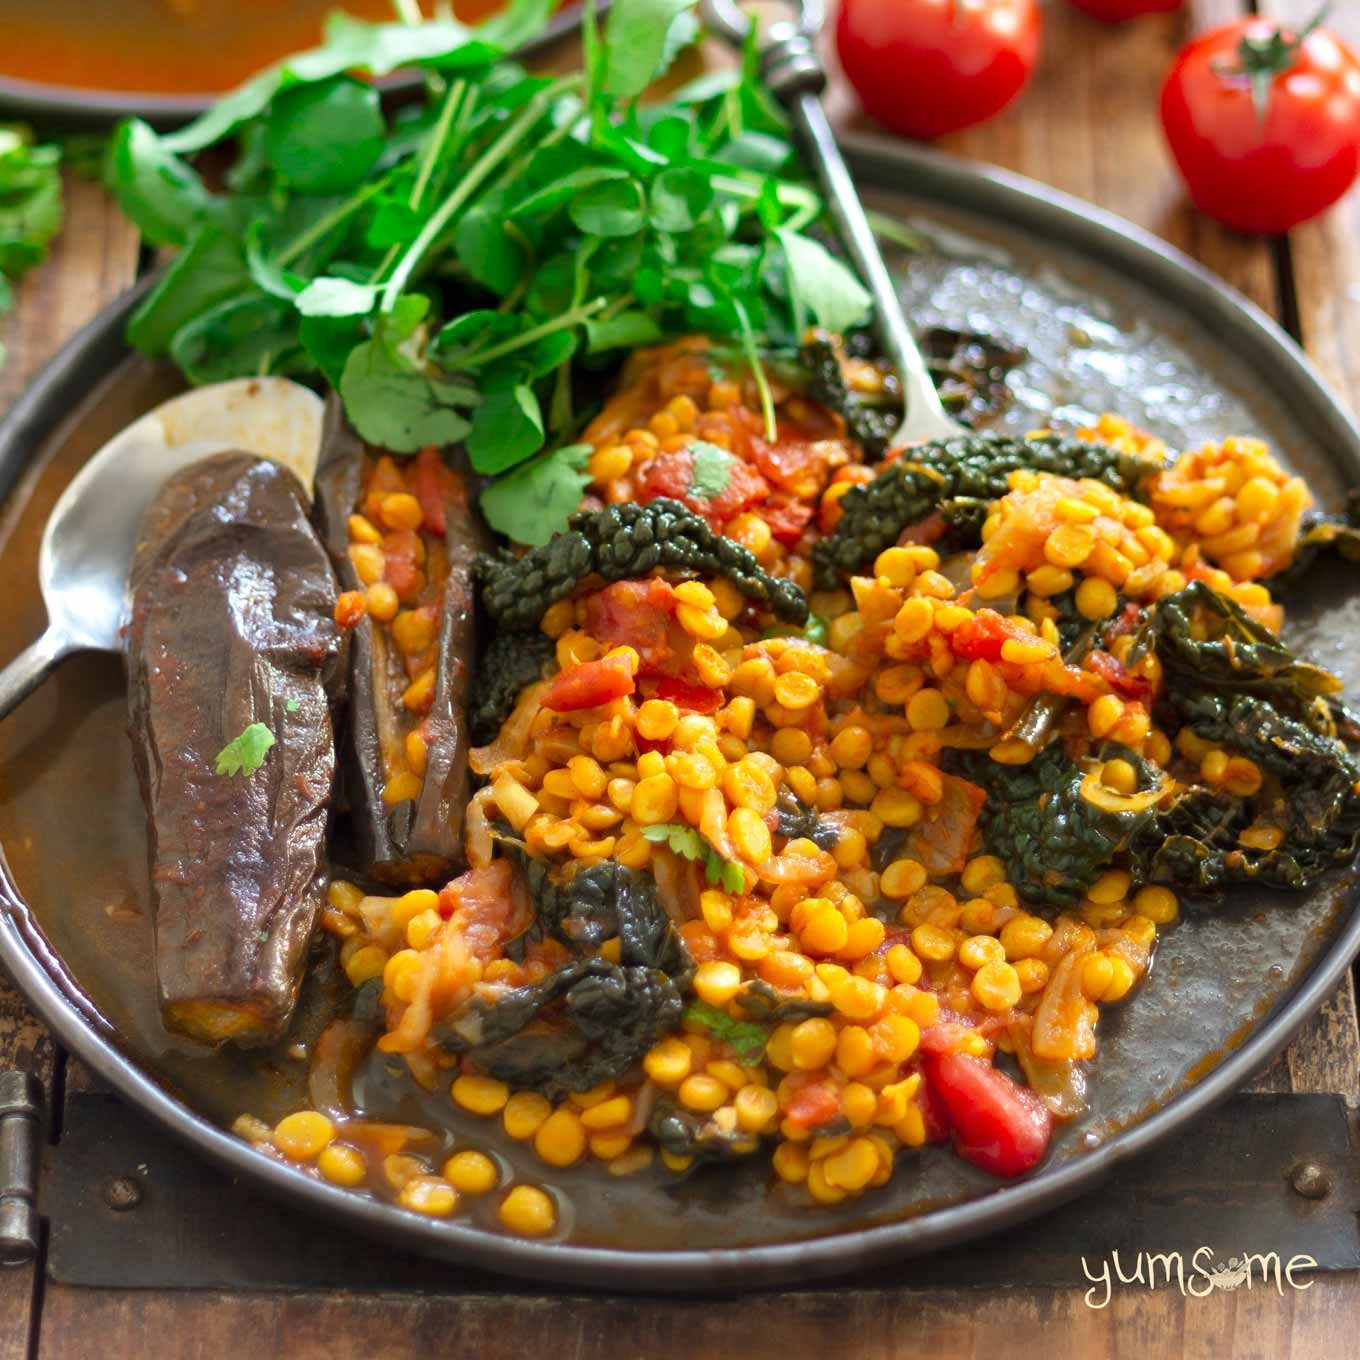 vegan spicy dal, aubergine, and kale casserole on a plate, and salad | yumsome.com